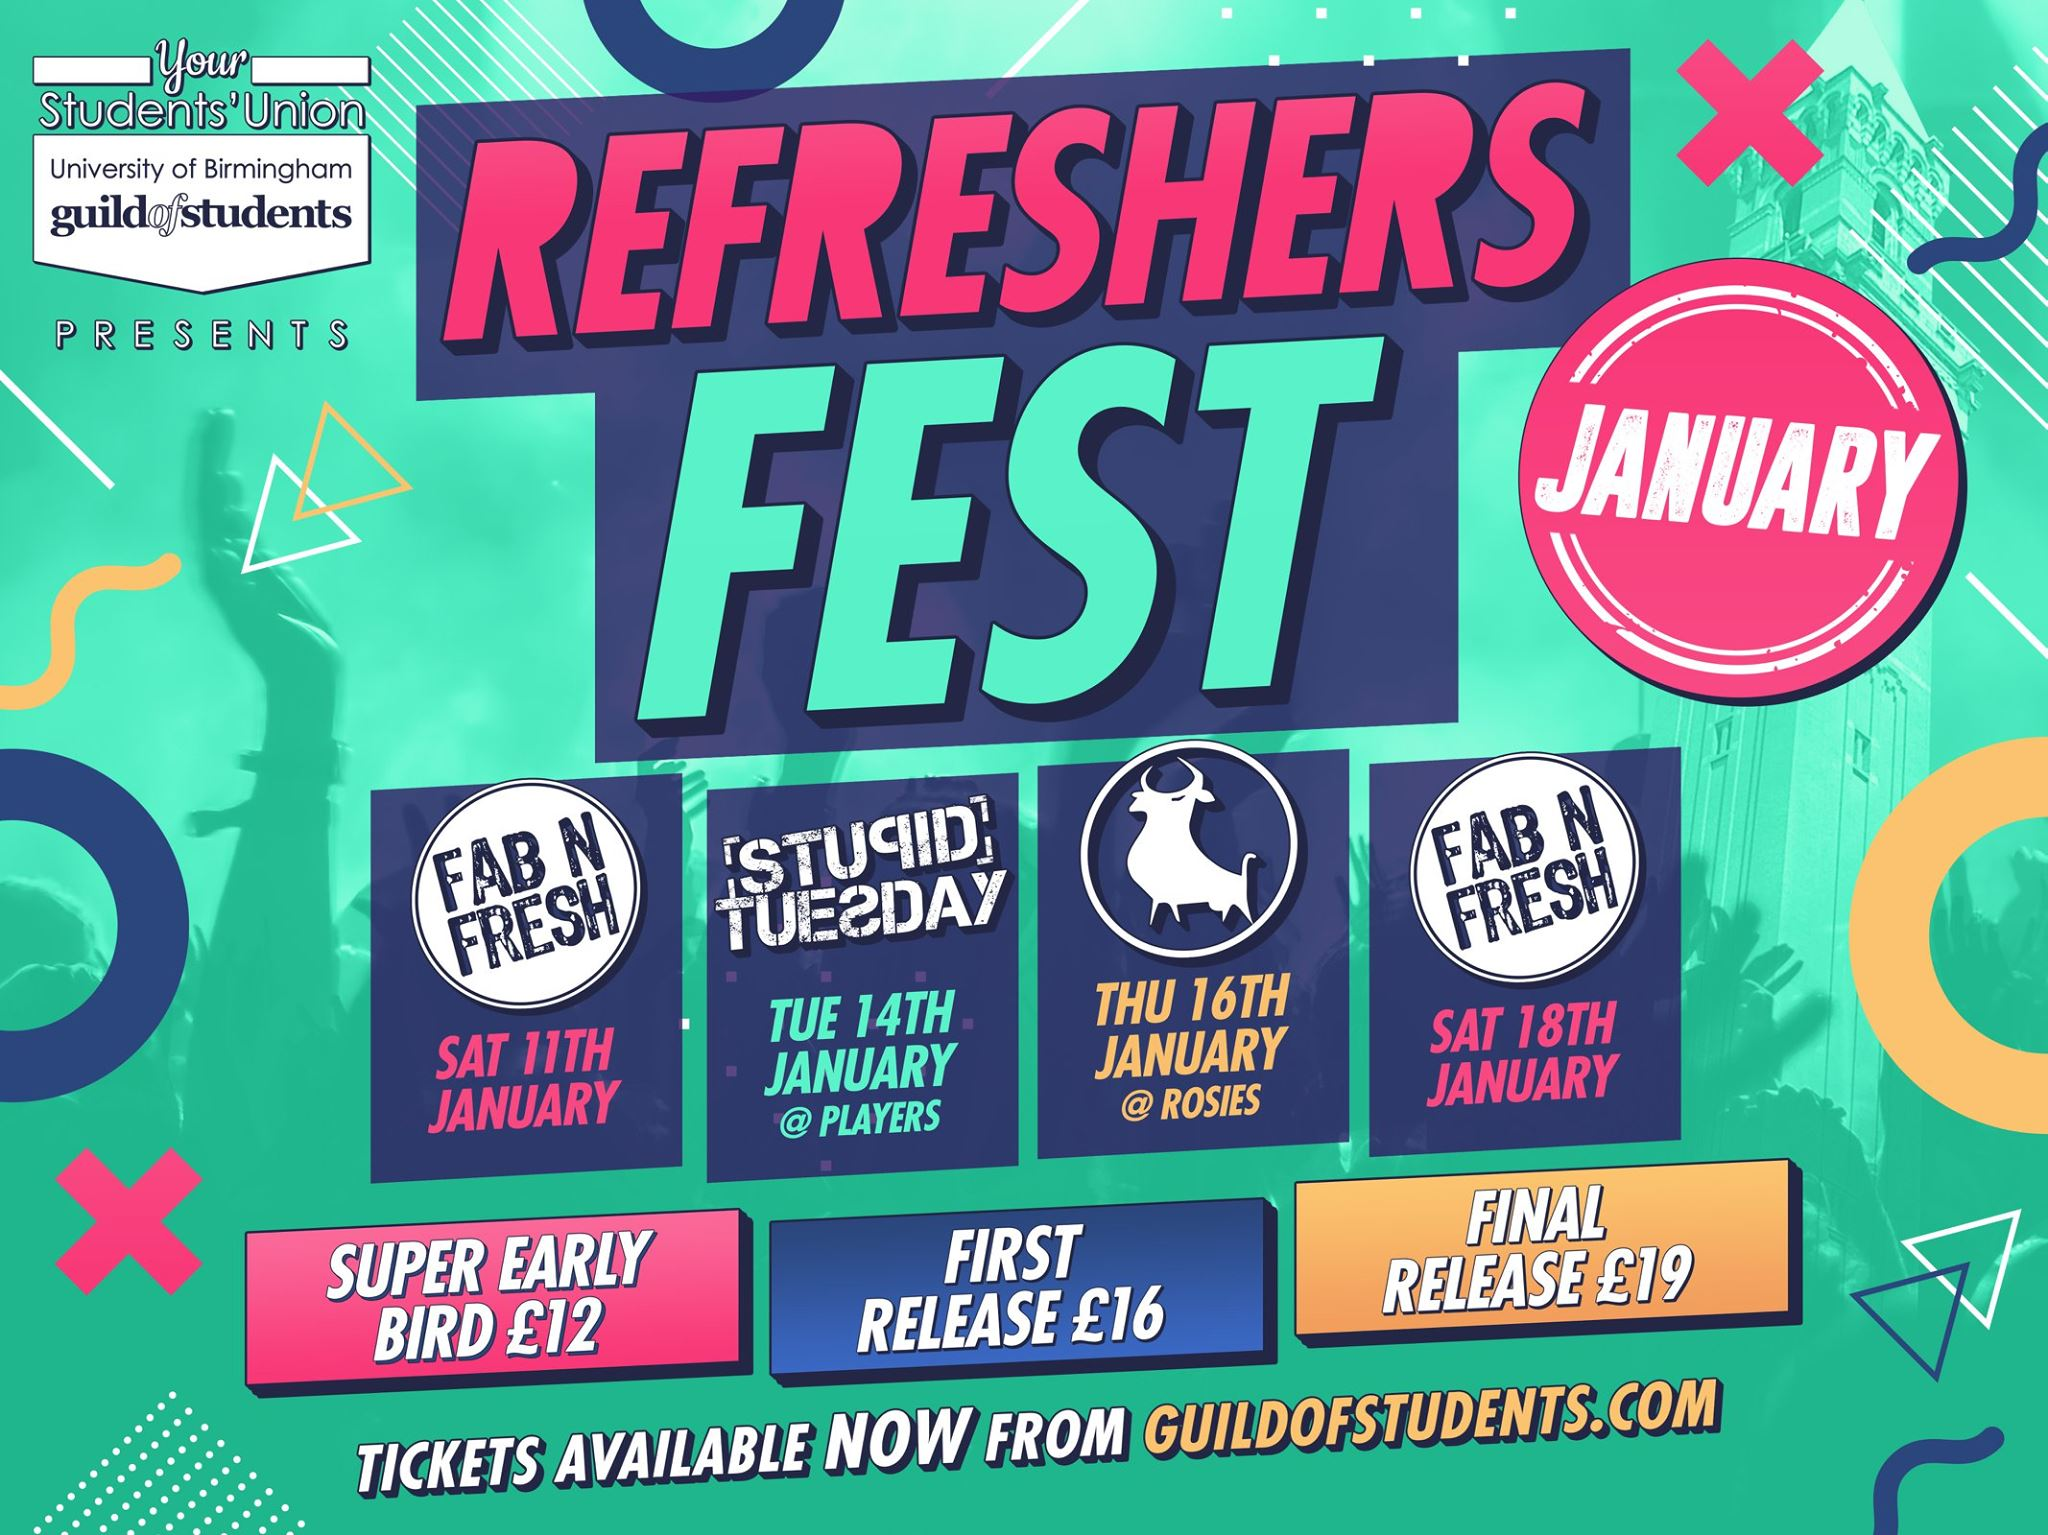 Refreshers Fest